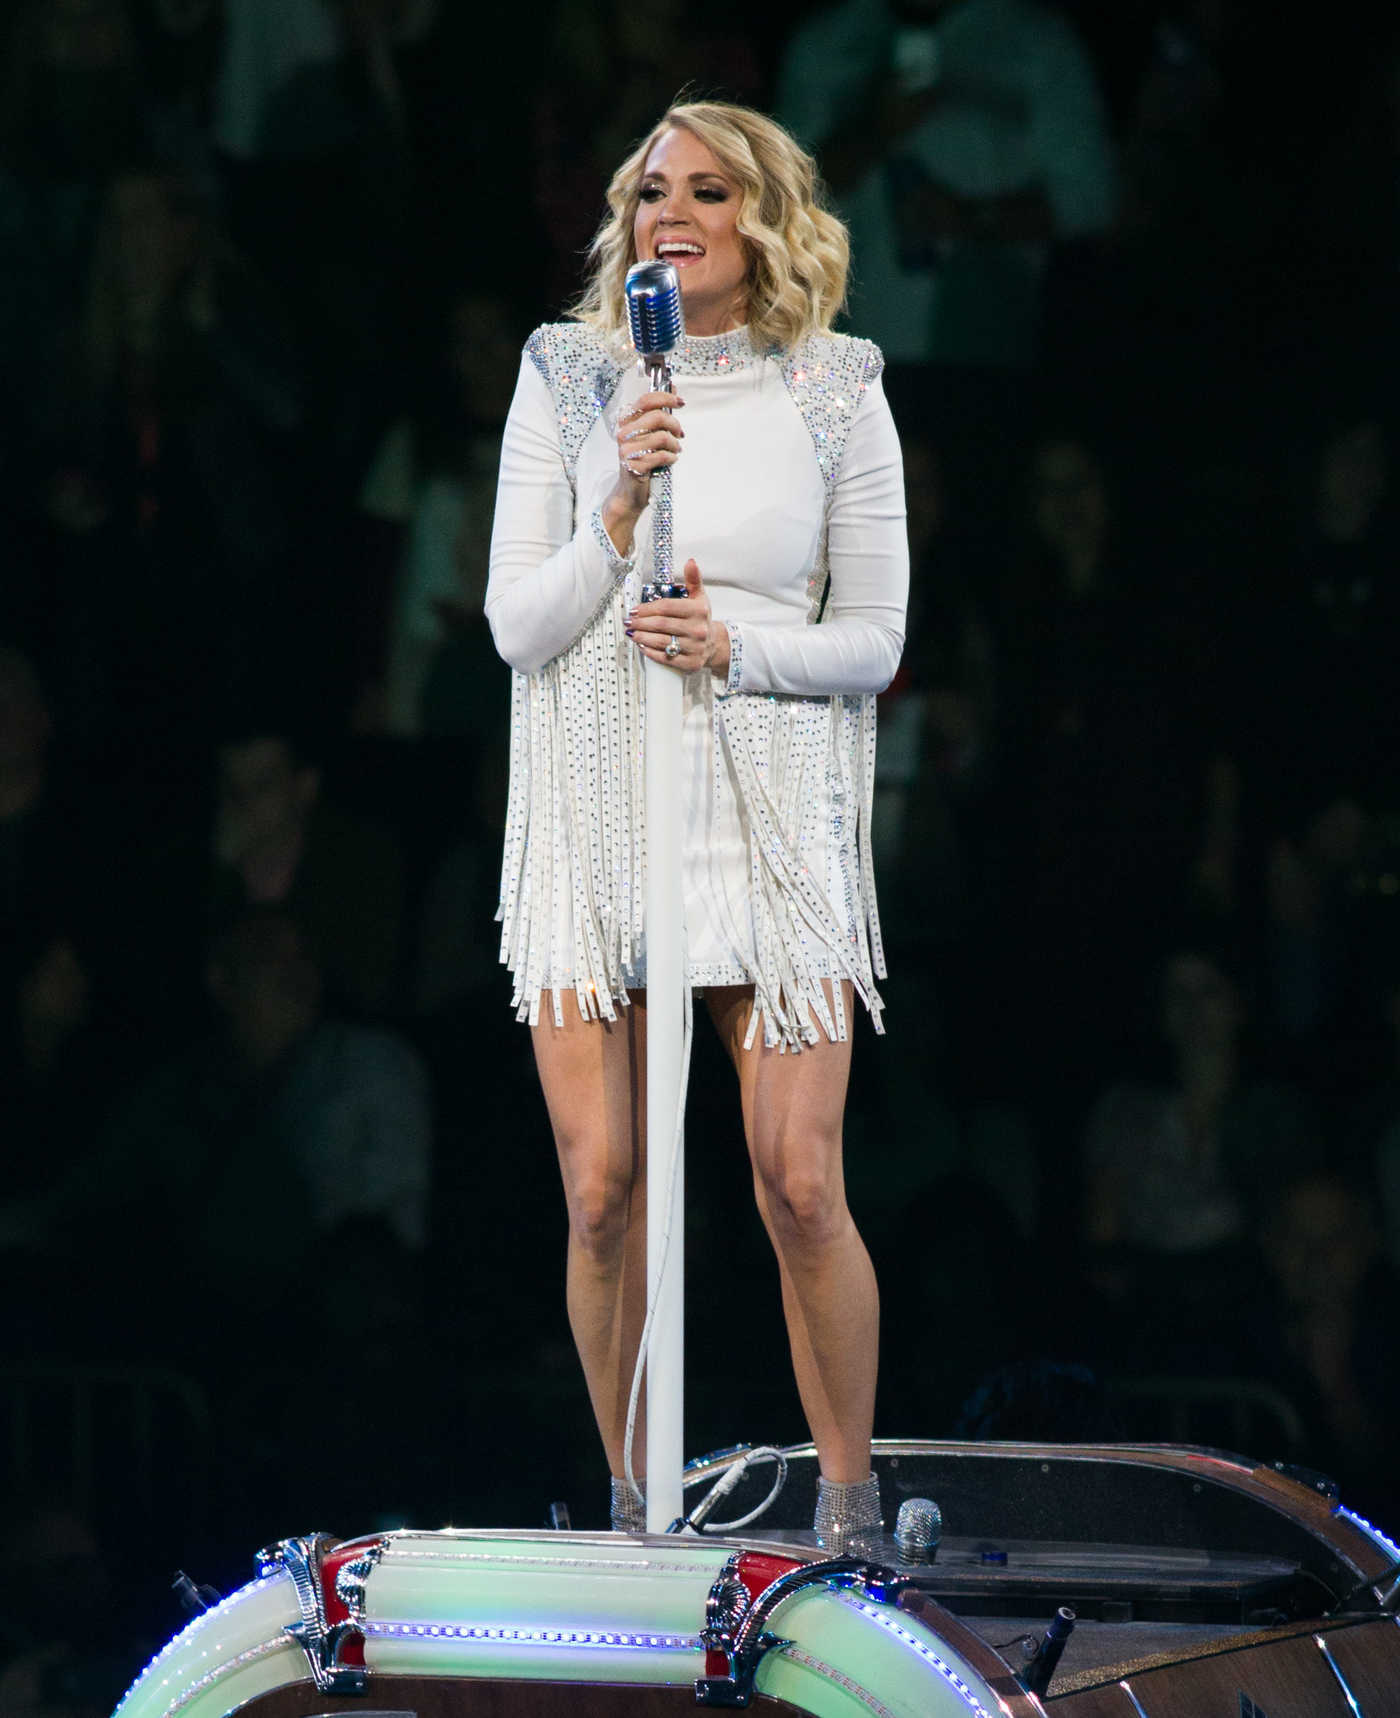 Carrie Underwood Performs During The Storyteller Tour at Madison Square Garden in New York 10/25/2016